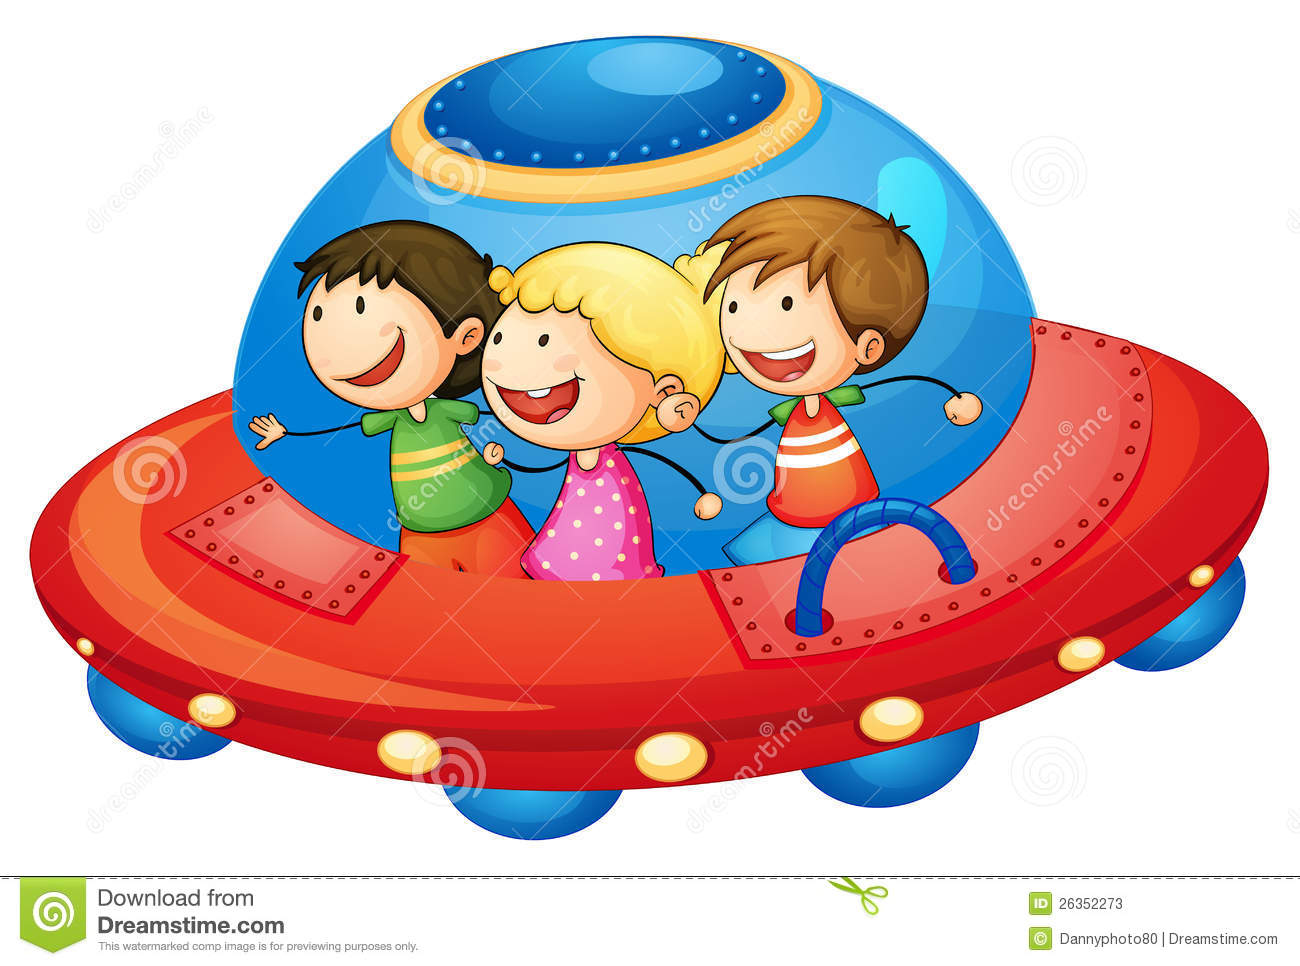 Illustration of a kids in spaceship on white background.